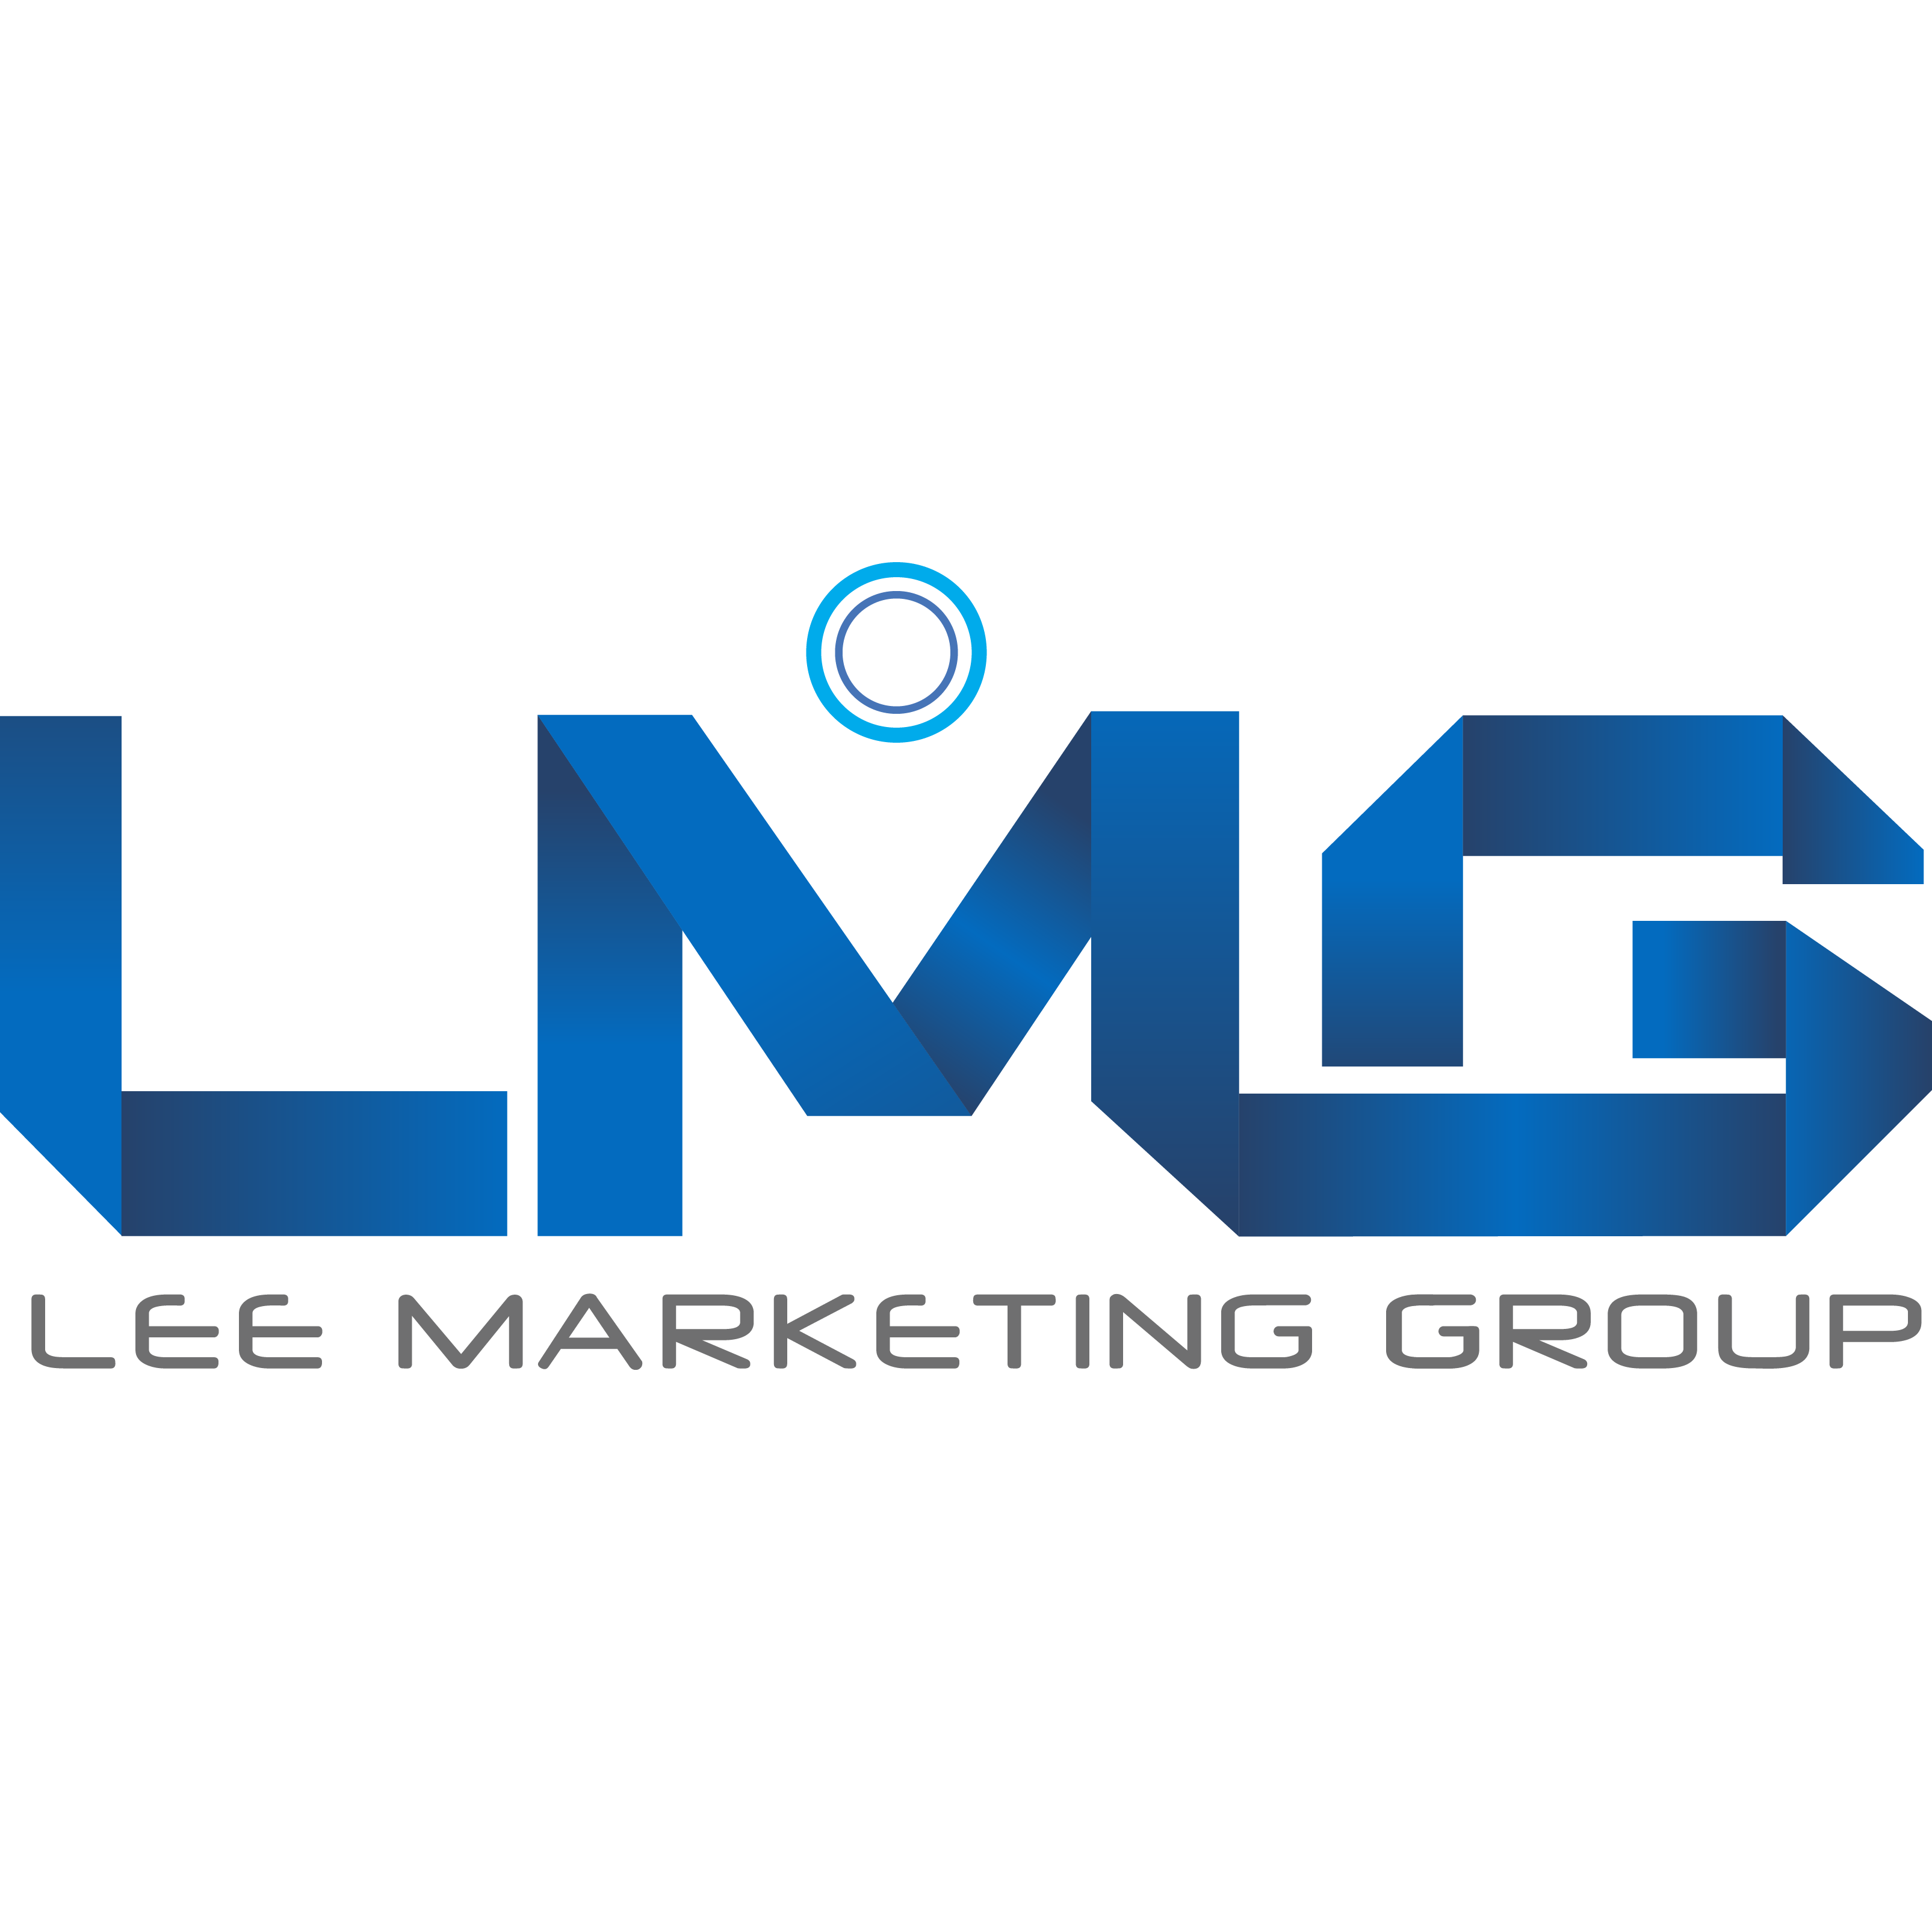 Lee Marketing Group